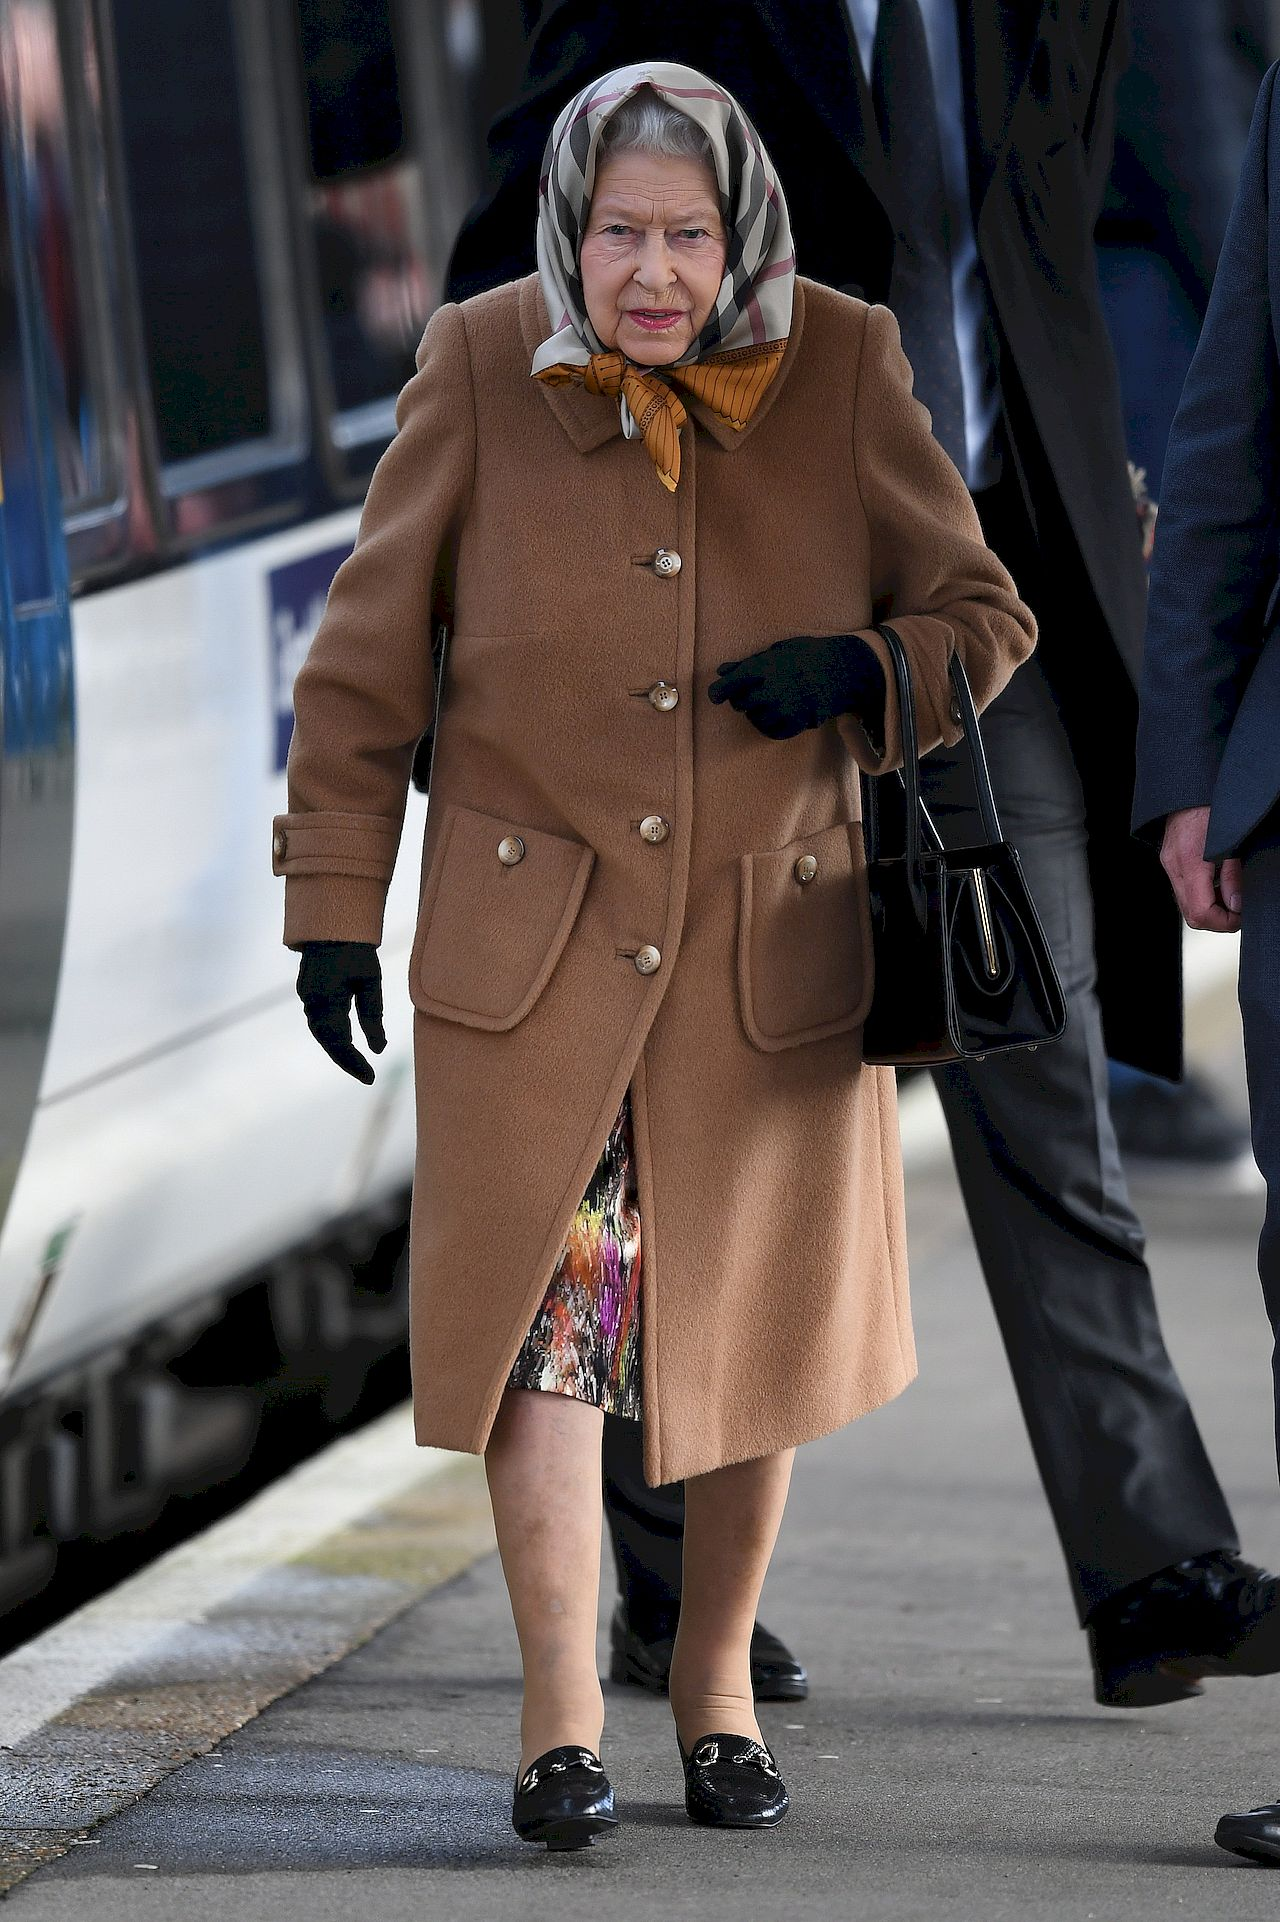 The Queen arrives at Kings Lynn Station for Christmas